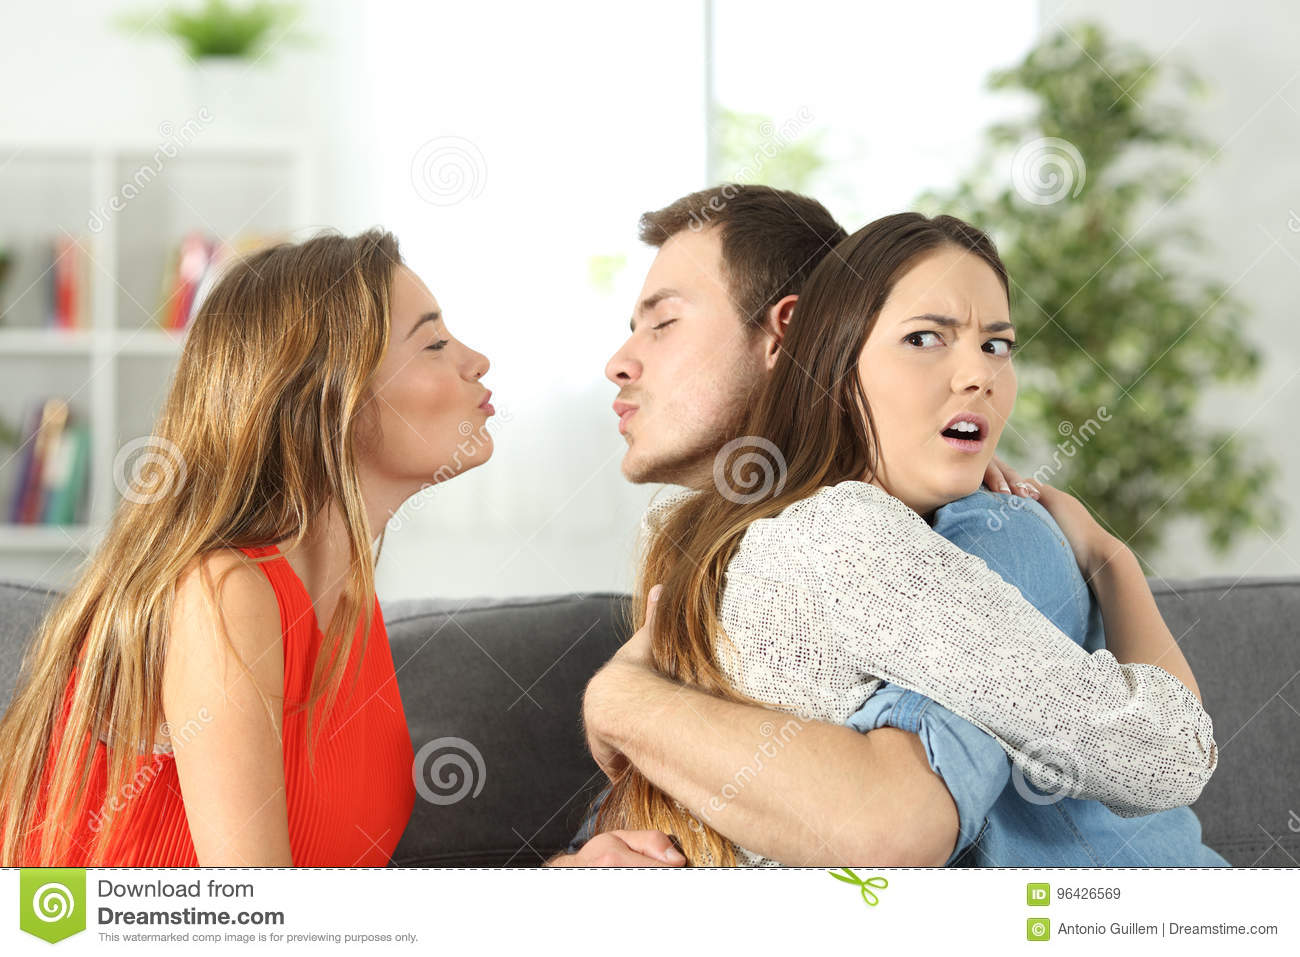 Girlfriend discovering that her boyfriend is cheating